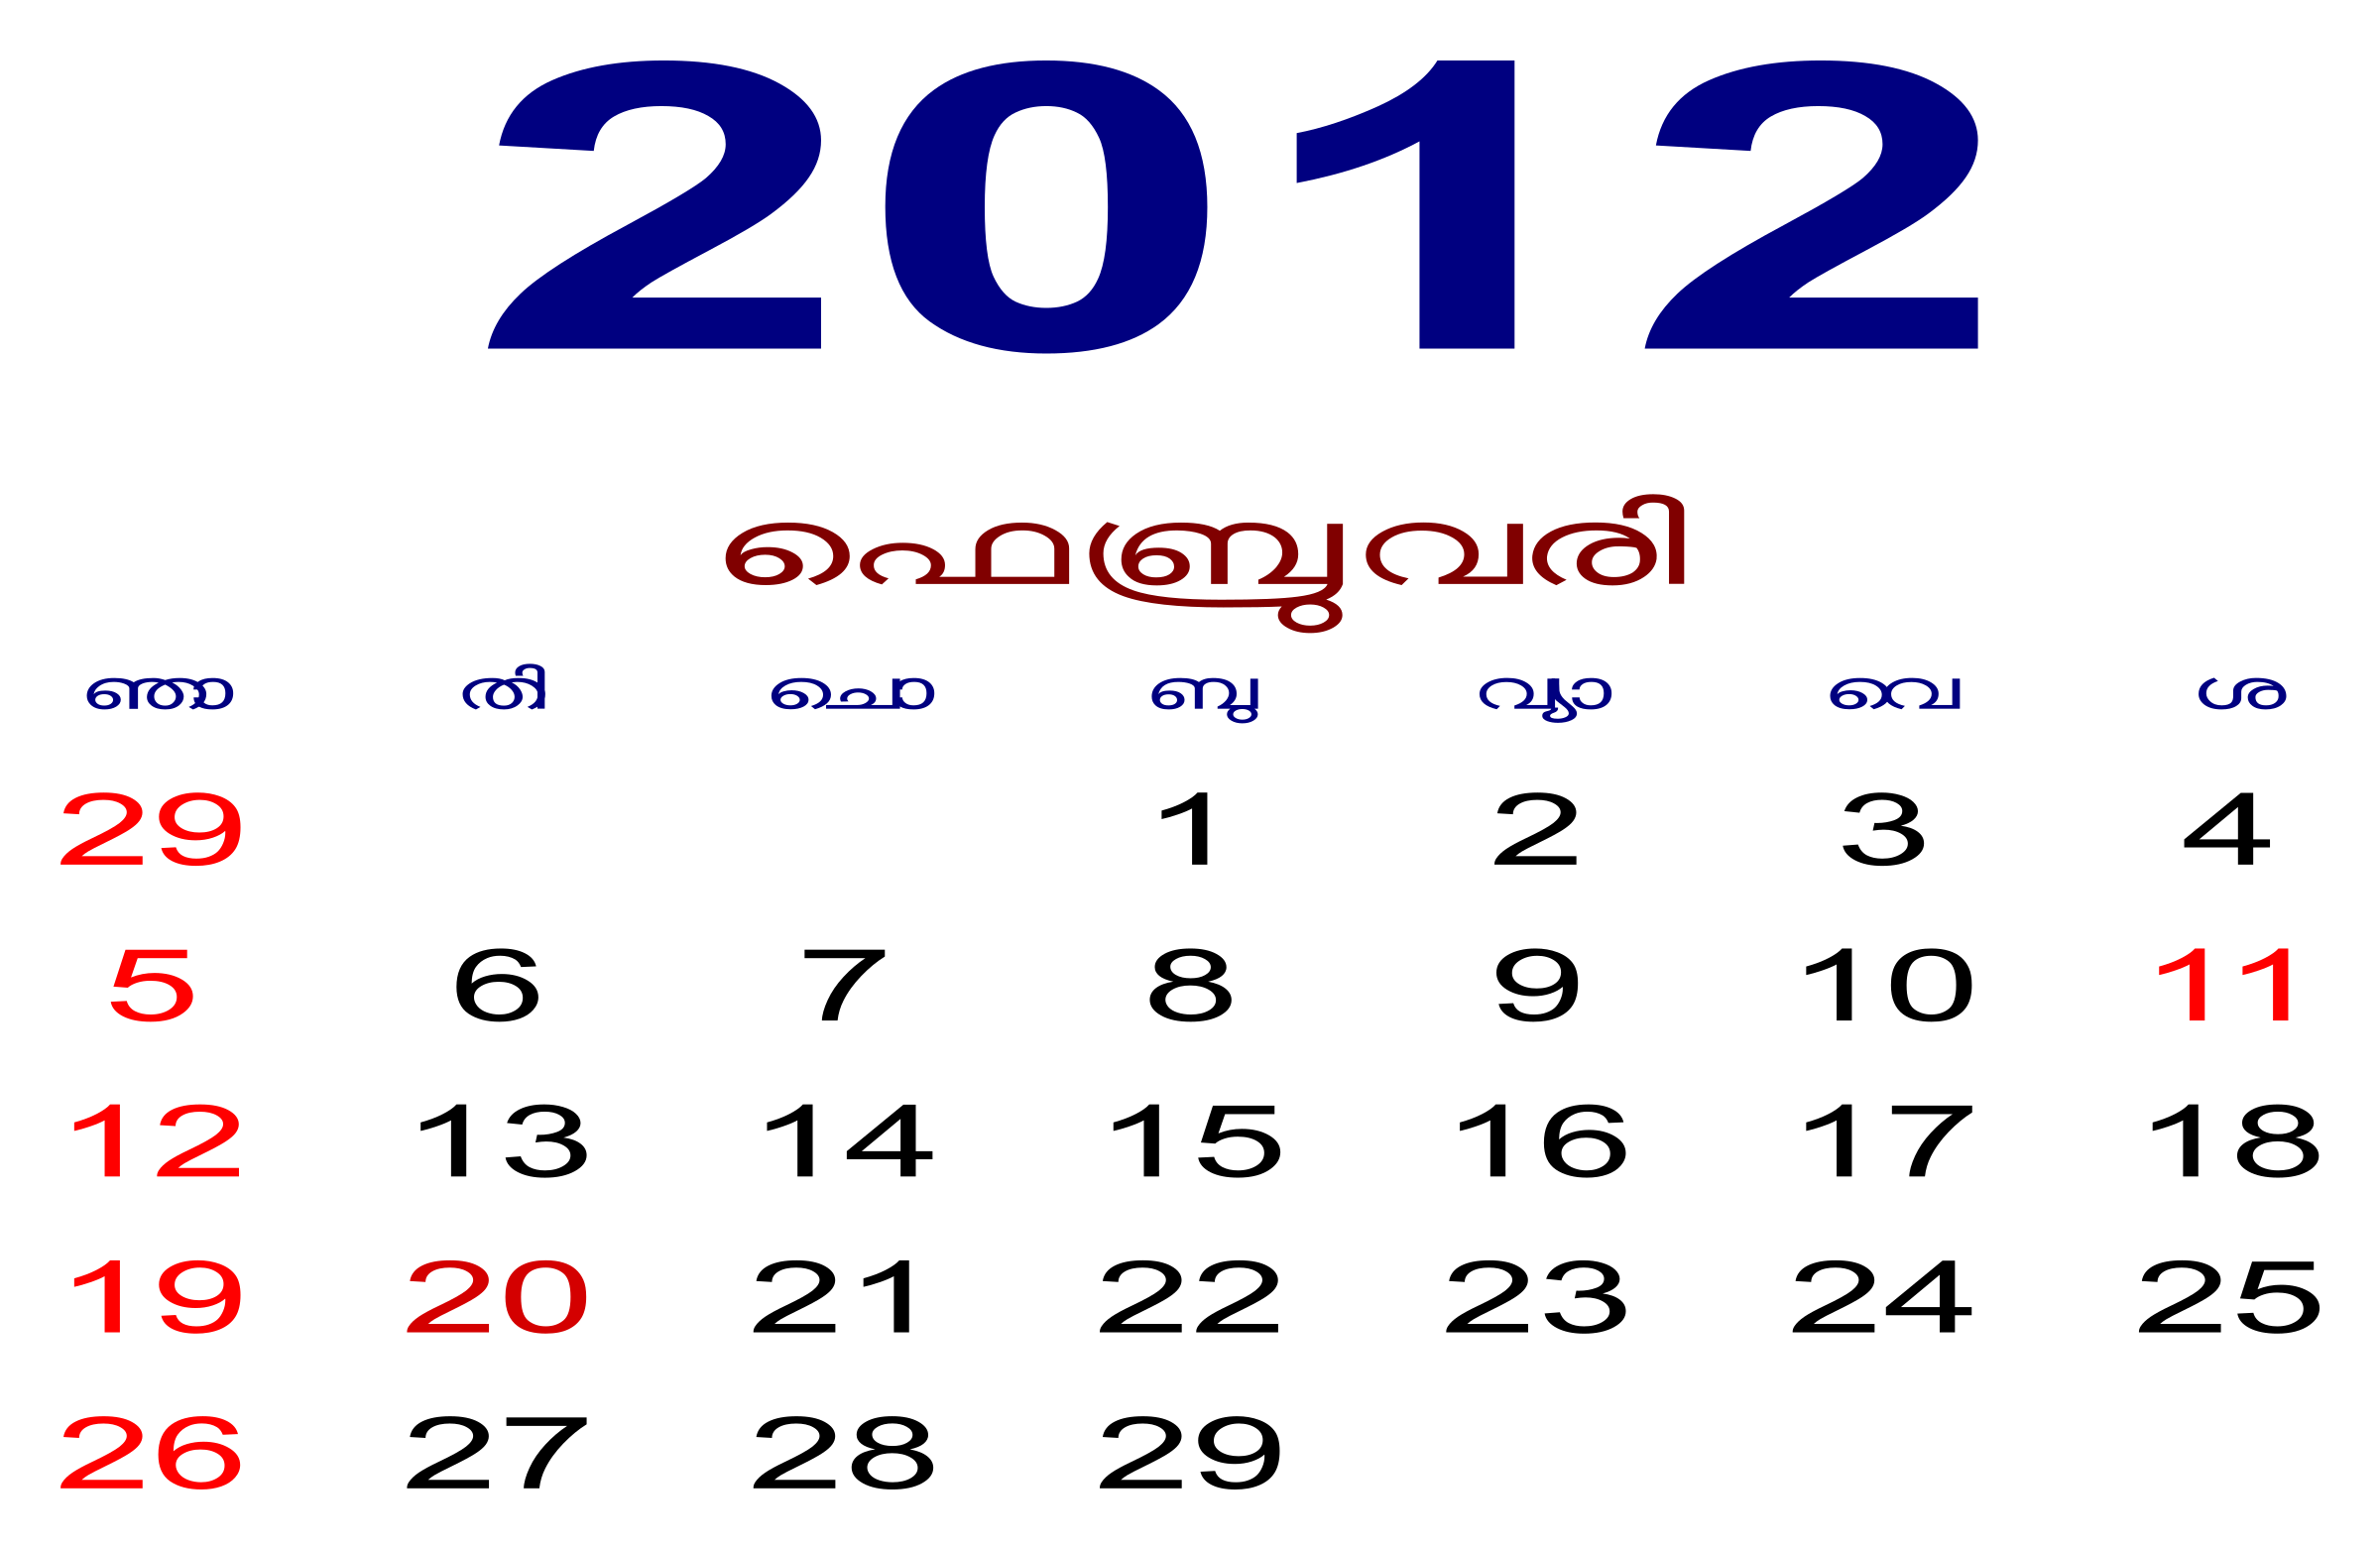 February Month Malayalam Calender 2012 Open Source by navaneethks